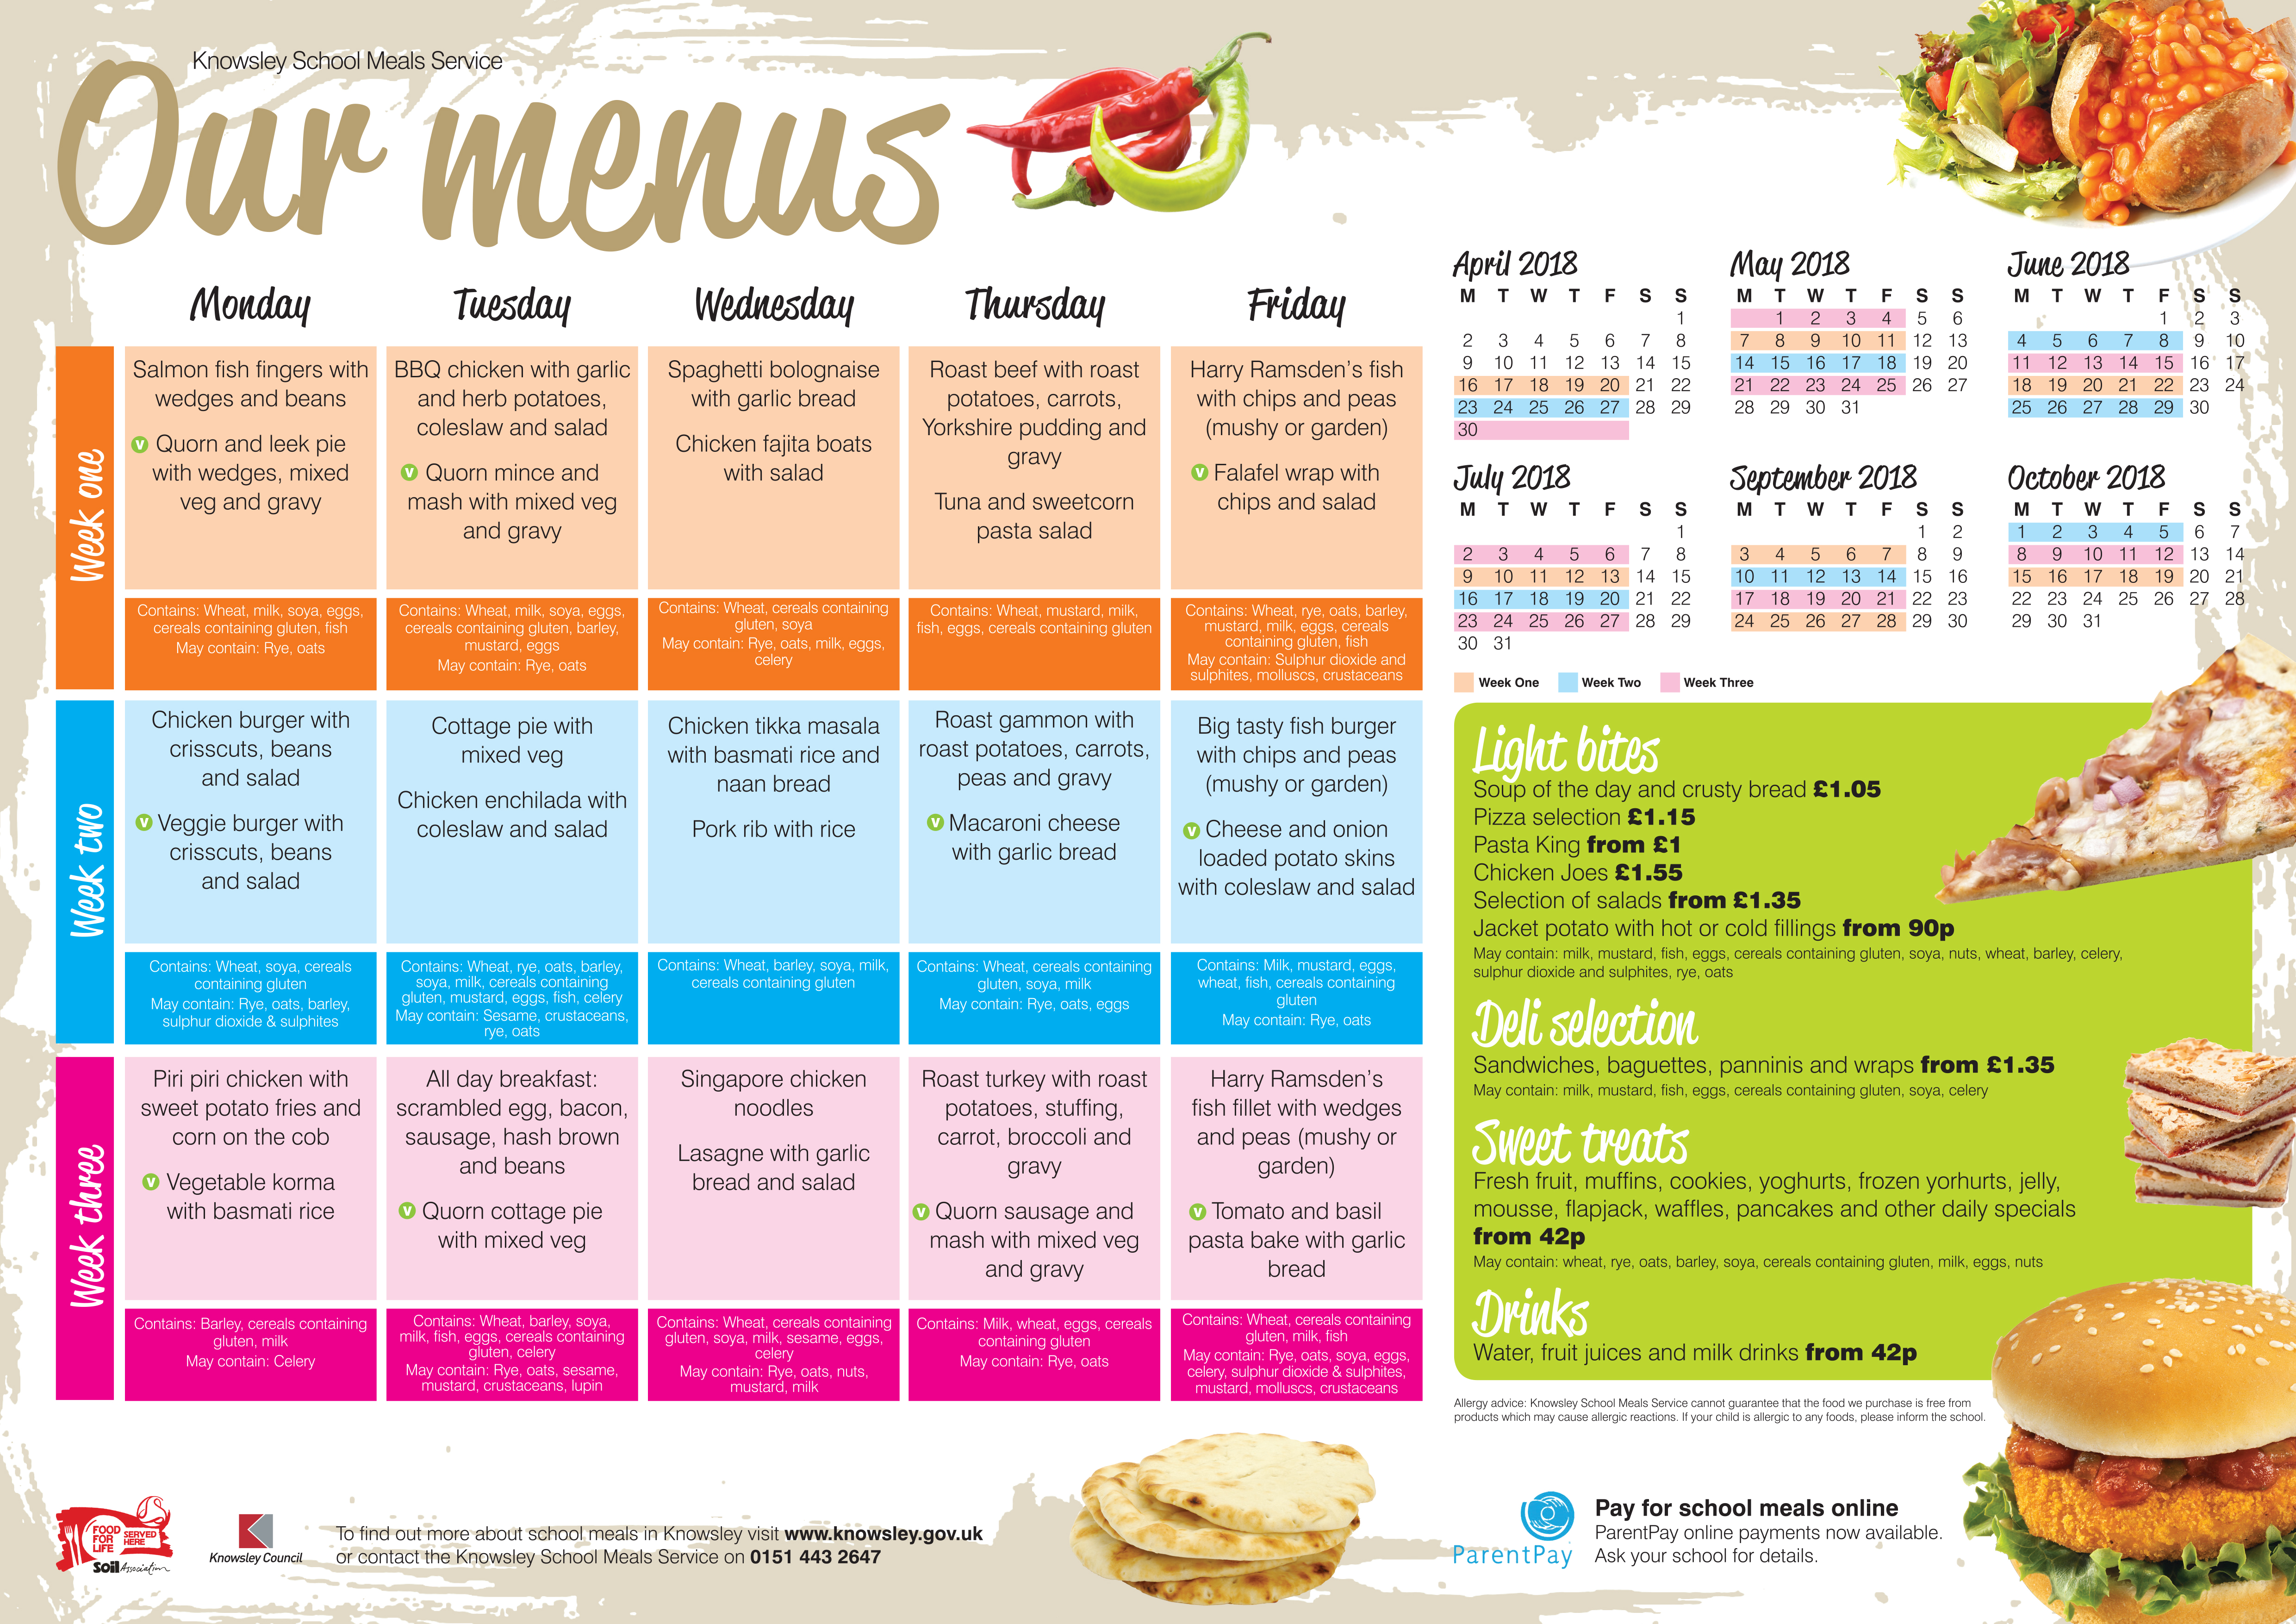 School meals: a full menu of the child 60